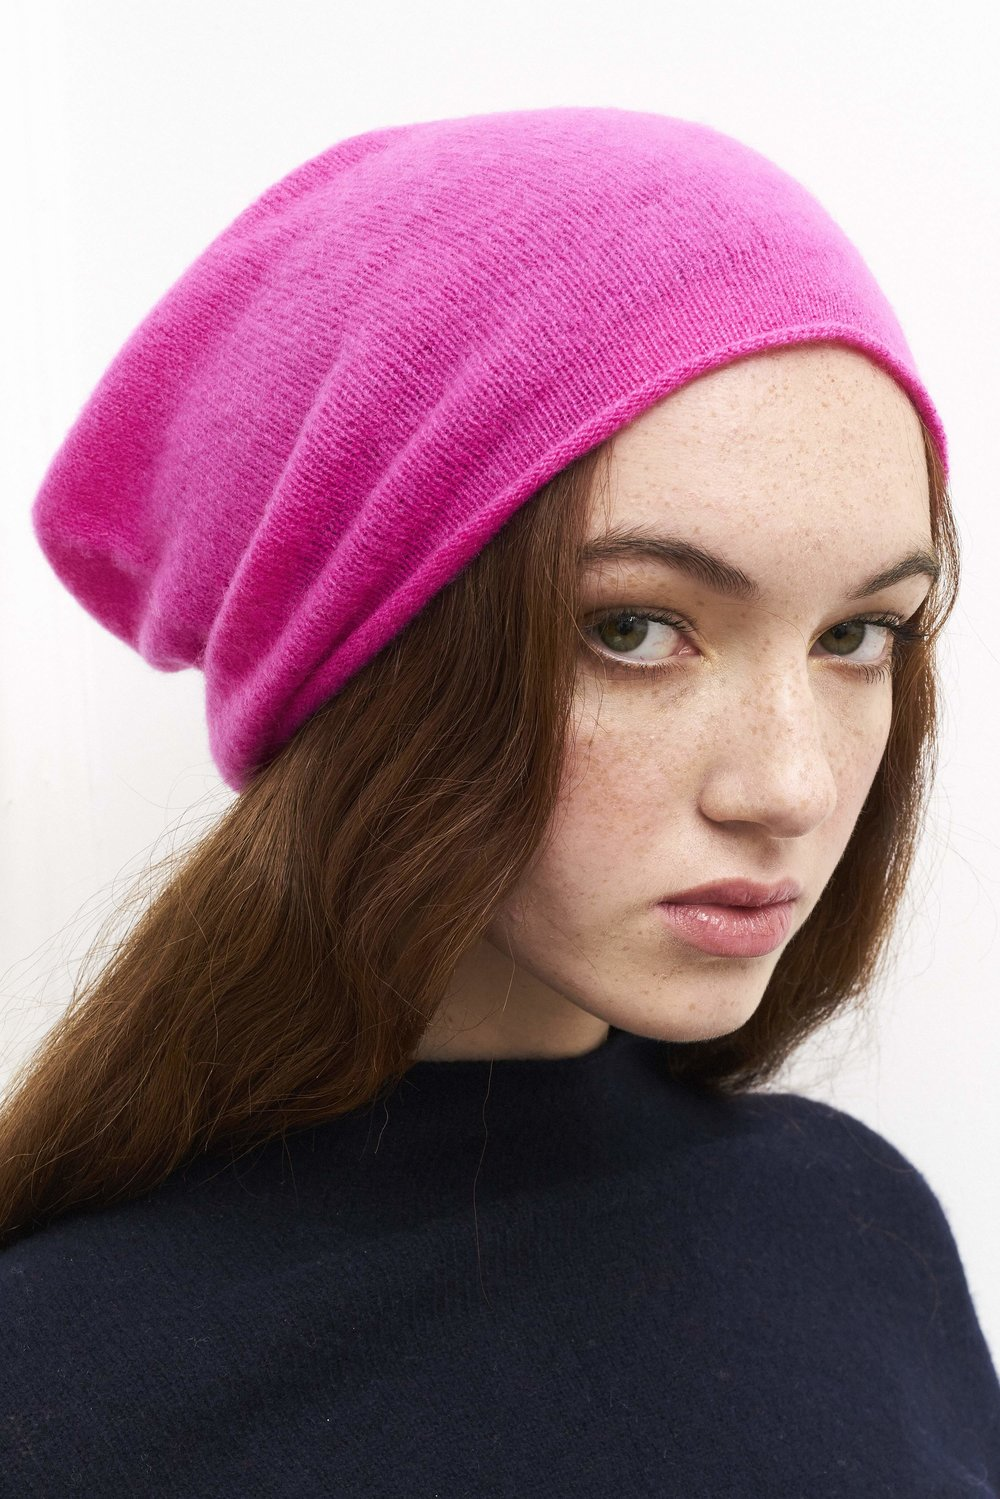 Classic Beanie Hat in Hot Pink — Laura Chambers 8aeb584d8f5